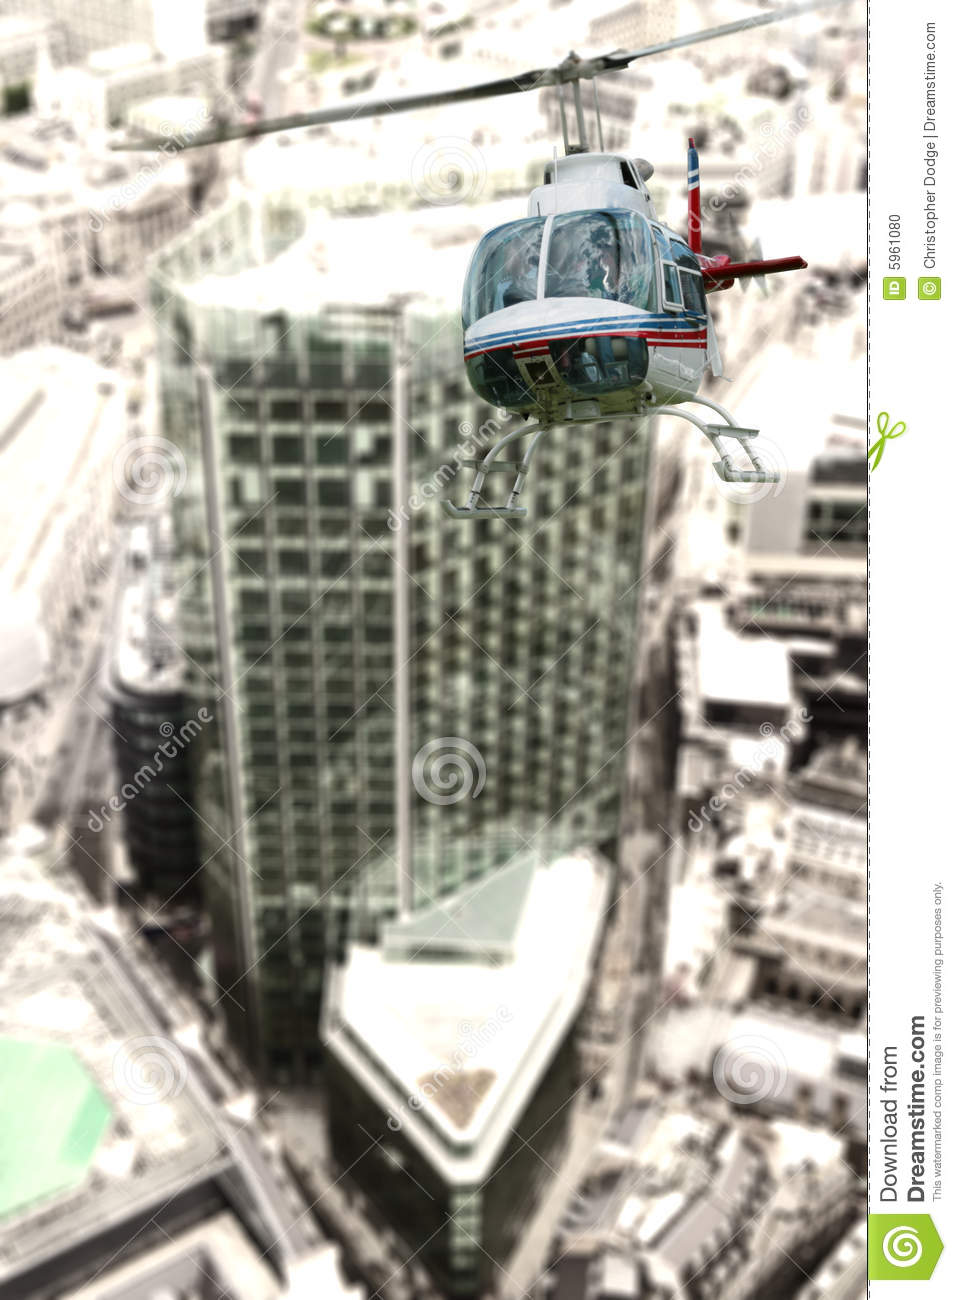 Helicopter Over City Buildings Stock Photo Image 5961080